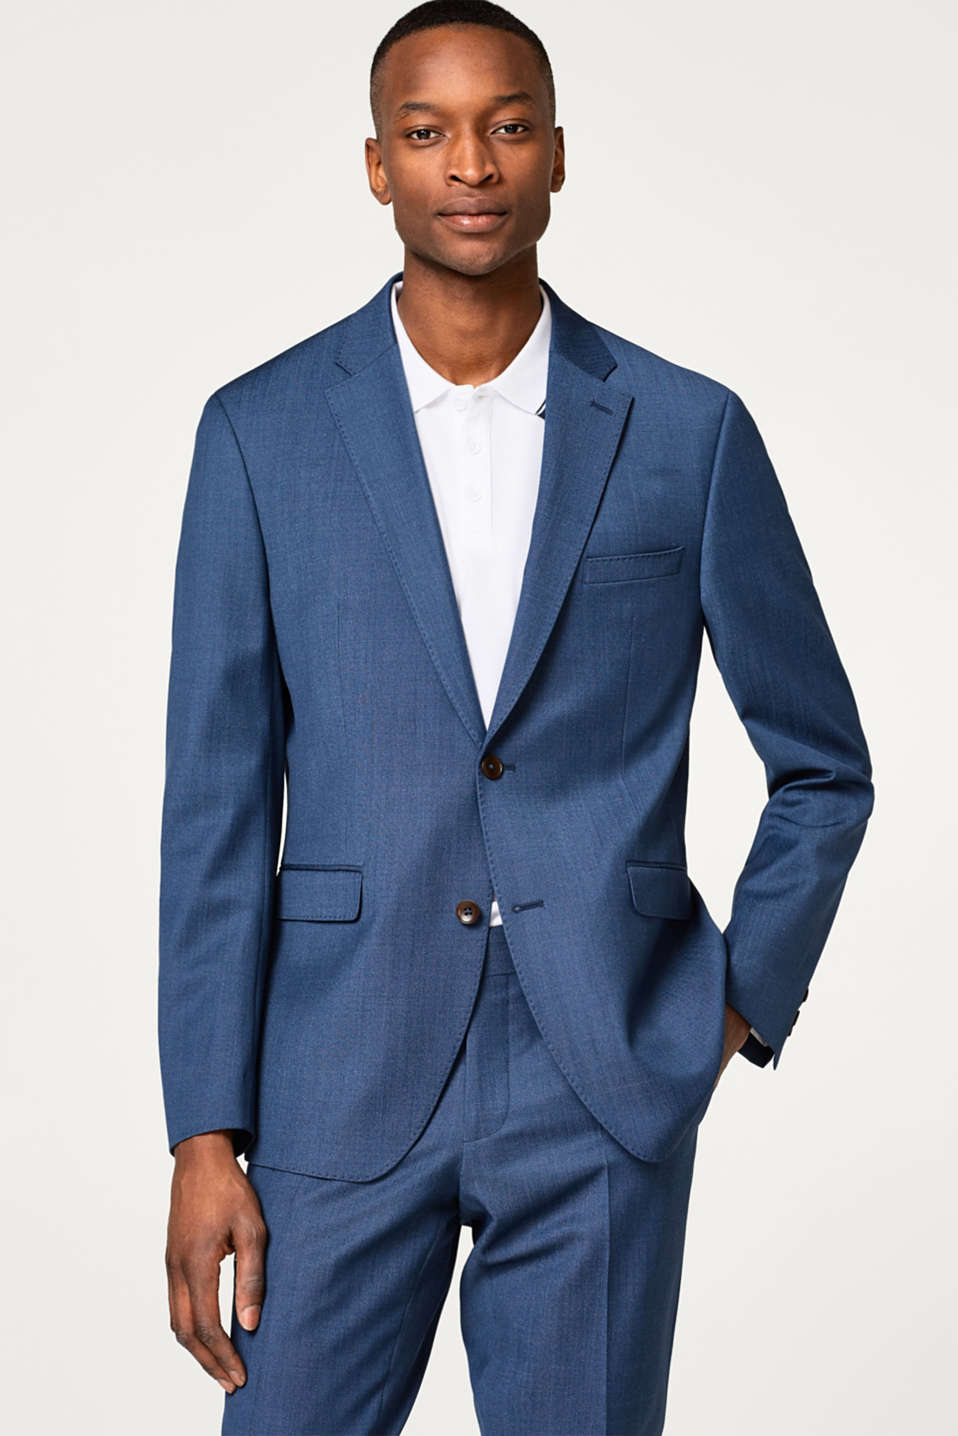 Esprit - ACTIVE SUIT finely textured tailored jacket, wool blend